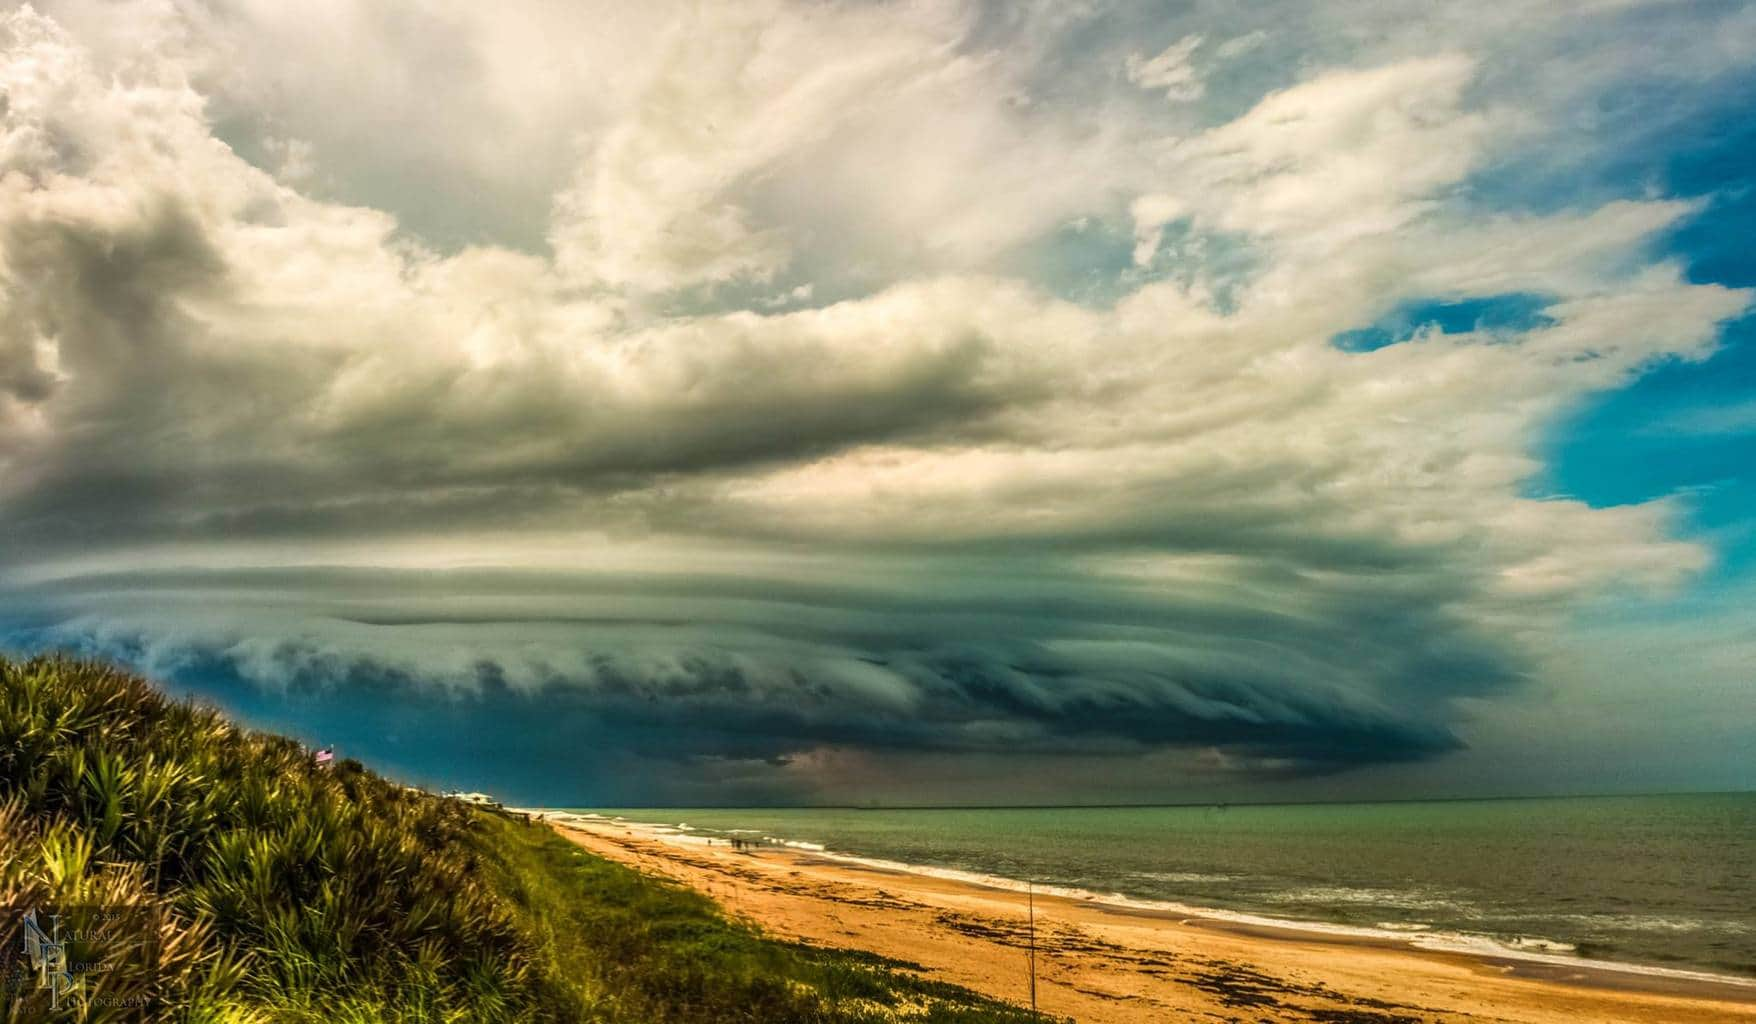 """ The Beast "" Flagler Beach, FL 6/25/15 One of the most photogenic shelf clouds I have ever seen. I took many shots of this beast but this 1 seemed to pop out more both in color and structure. Enjoy"